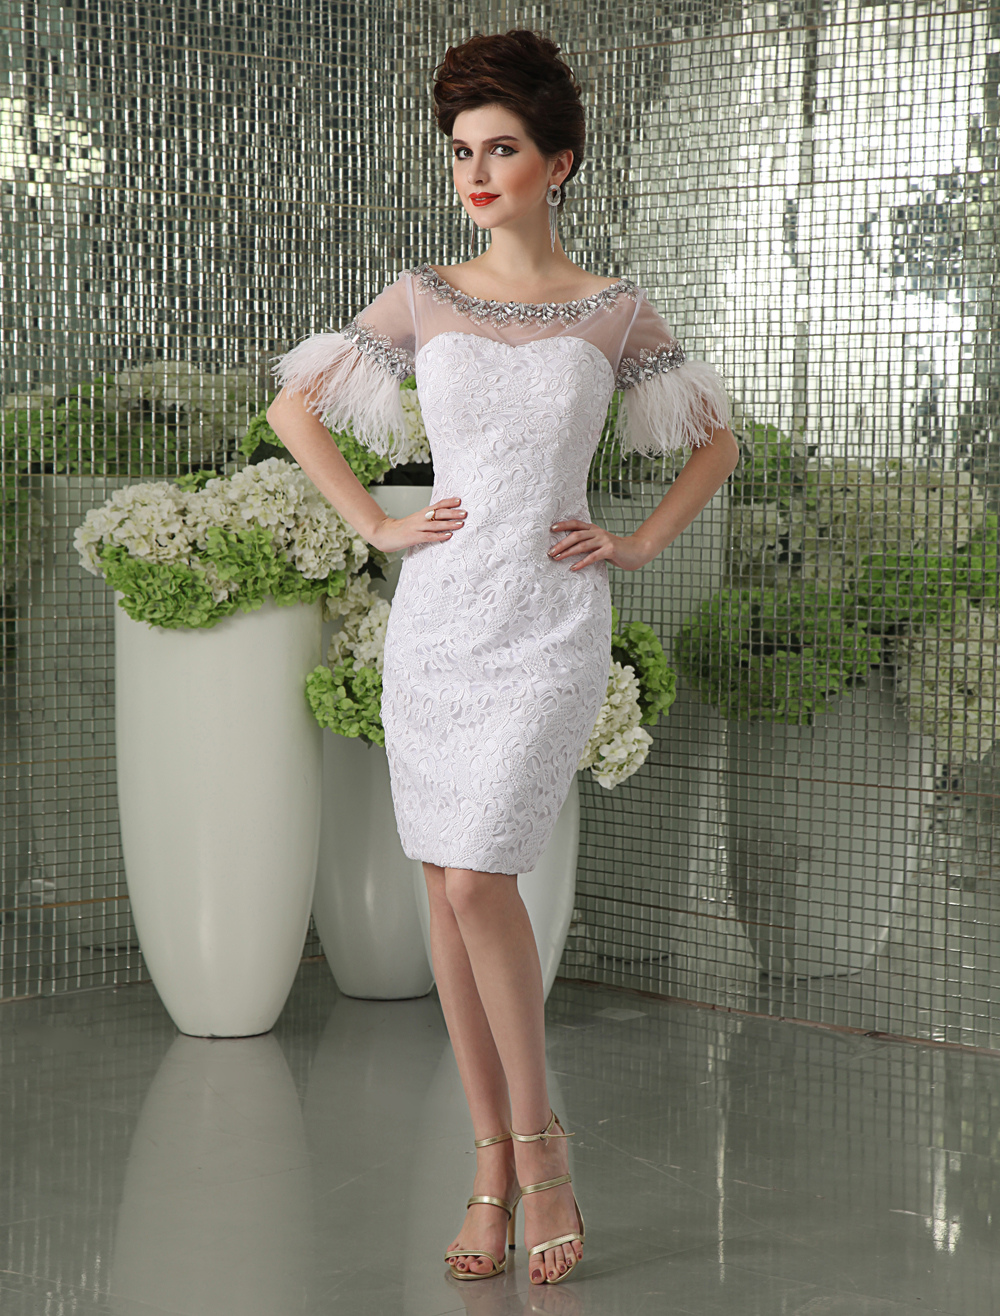 Sheath White Lace Feather Knee-Length Cocktail Dress Milanoo (Wedding Cocktail Dresses) photo